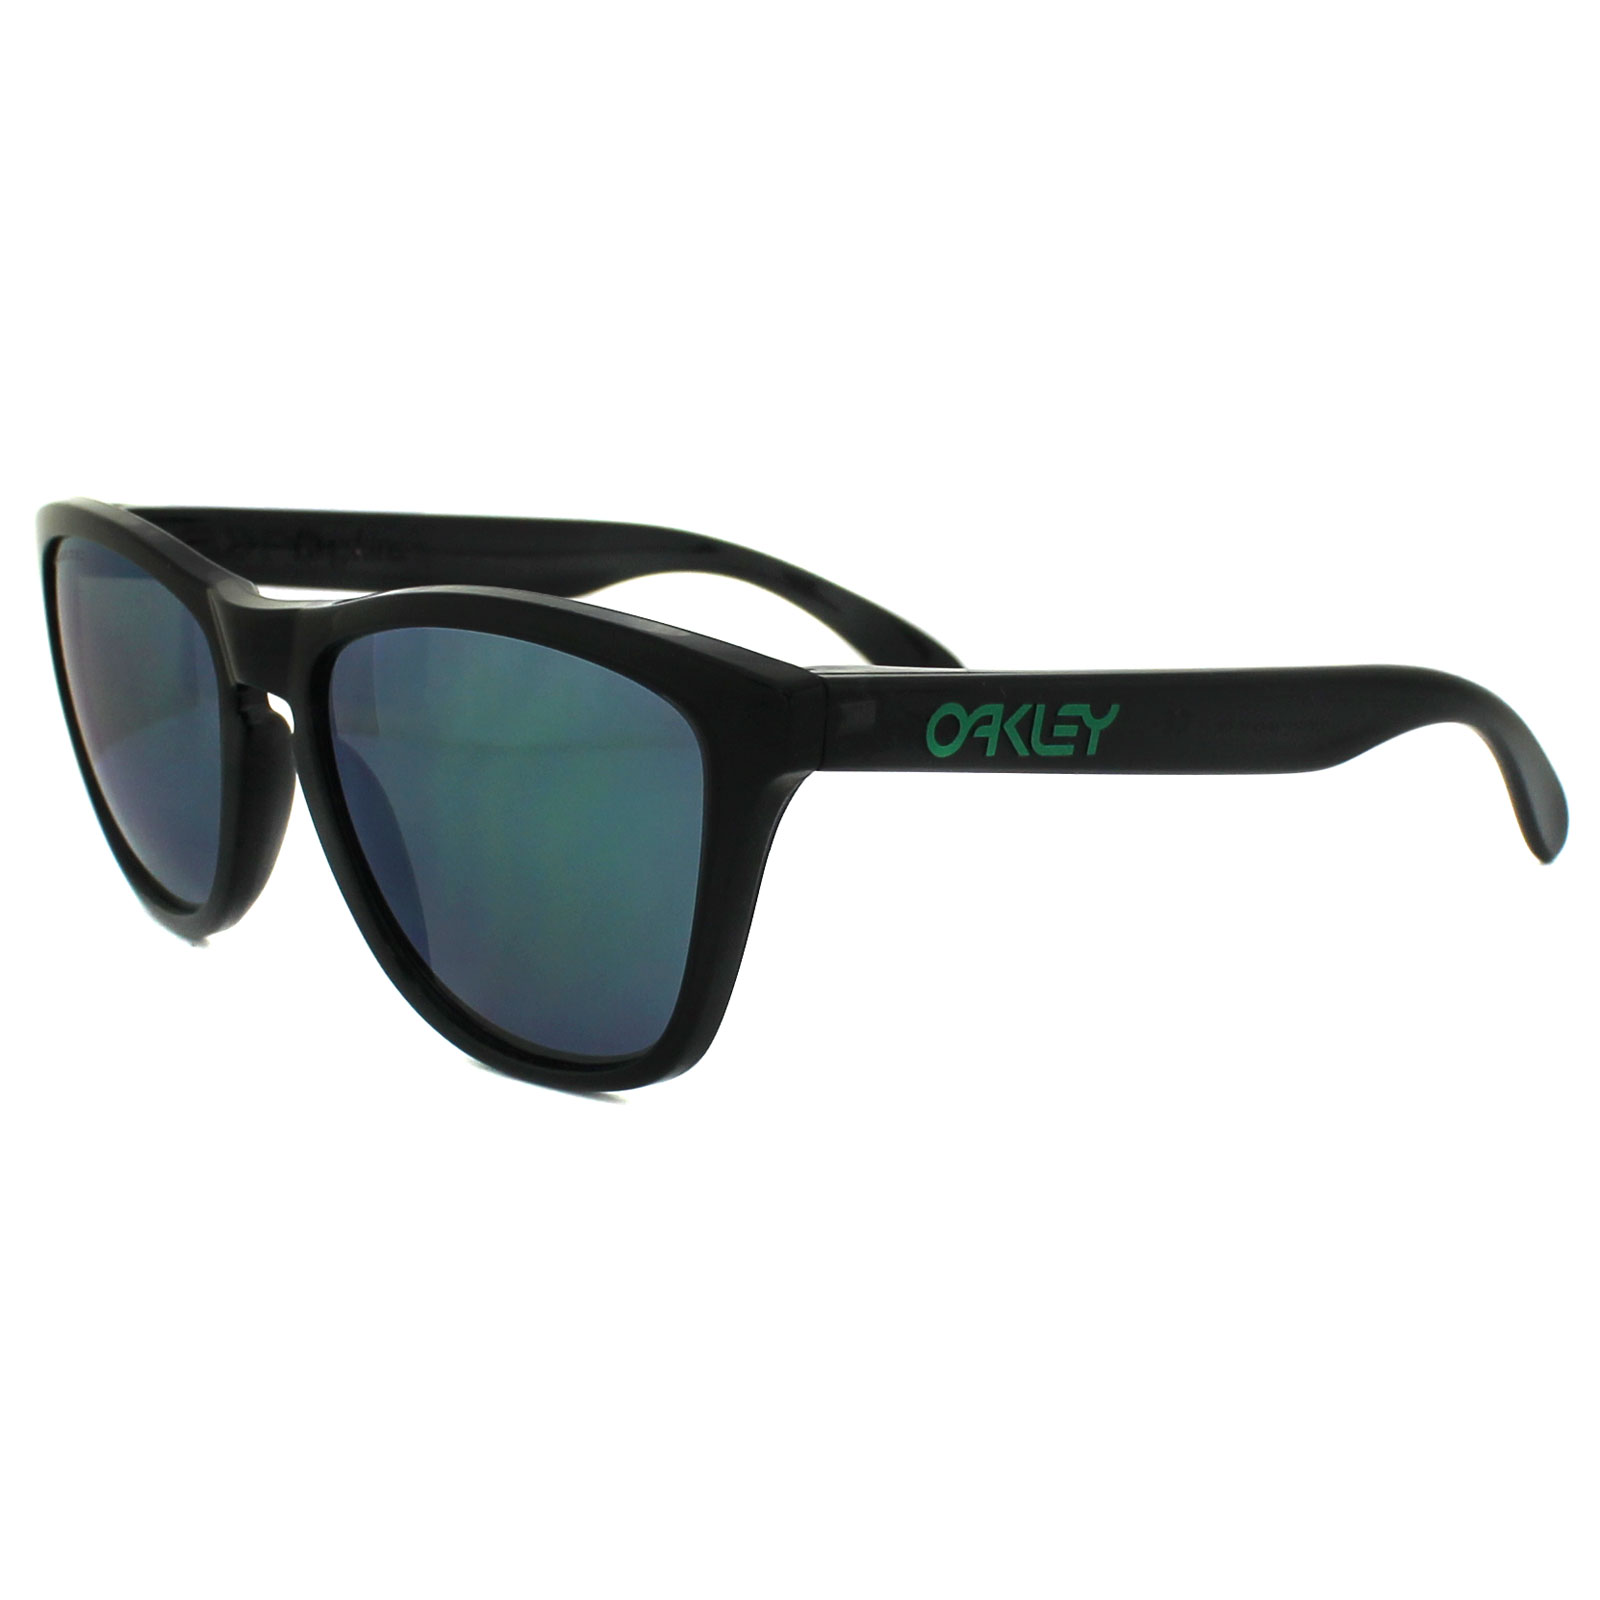 Oakley Frogskins Black Ink / Jade Iridium Polarized 9013-11 o3oP0RmU